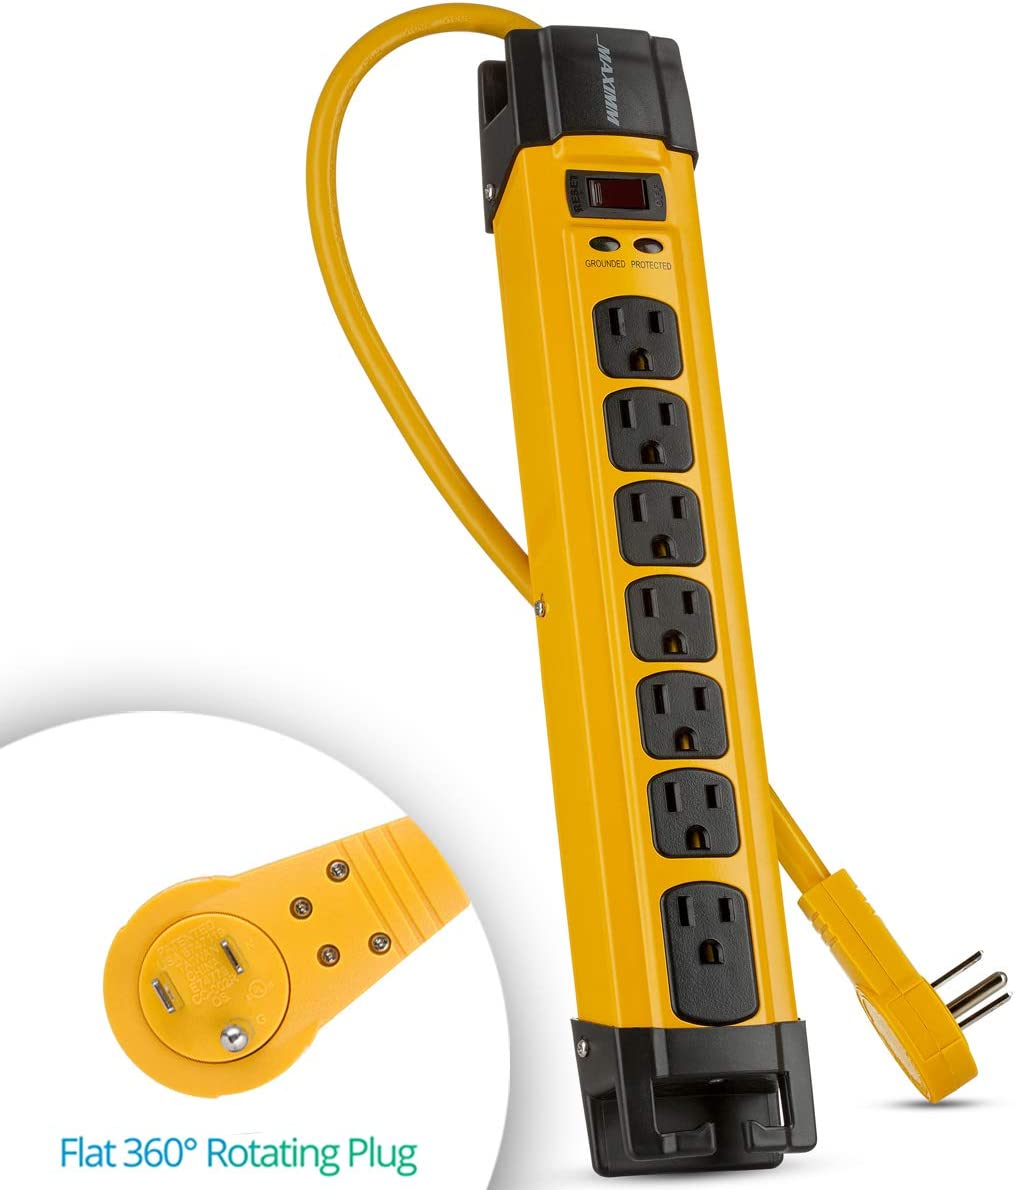 Maximm Heavy Duty Metal Power Strip Surge Protector 1440 Joules 7 AC Outlets 360 Degree Rotating Flat Plug 6 ft Long Extension Cord Cord Management, Multi Outlet Yellow Jobsite, Workshop